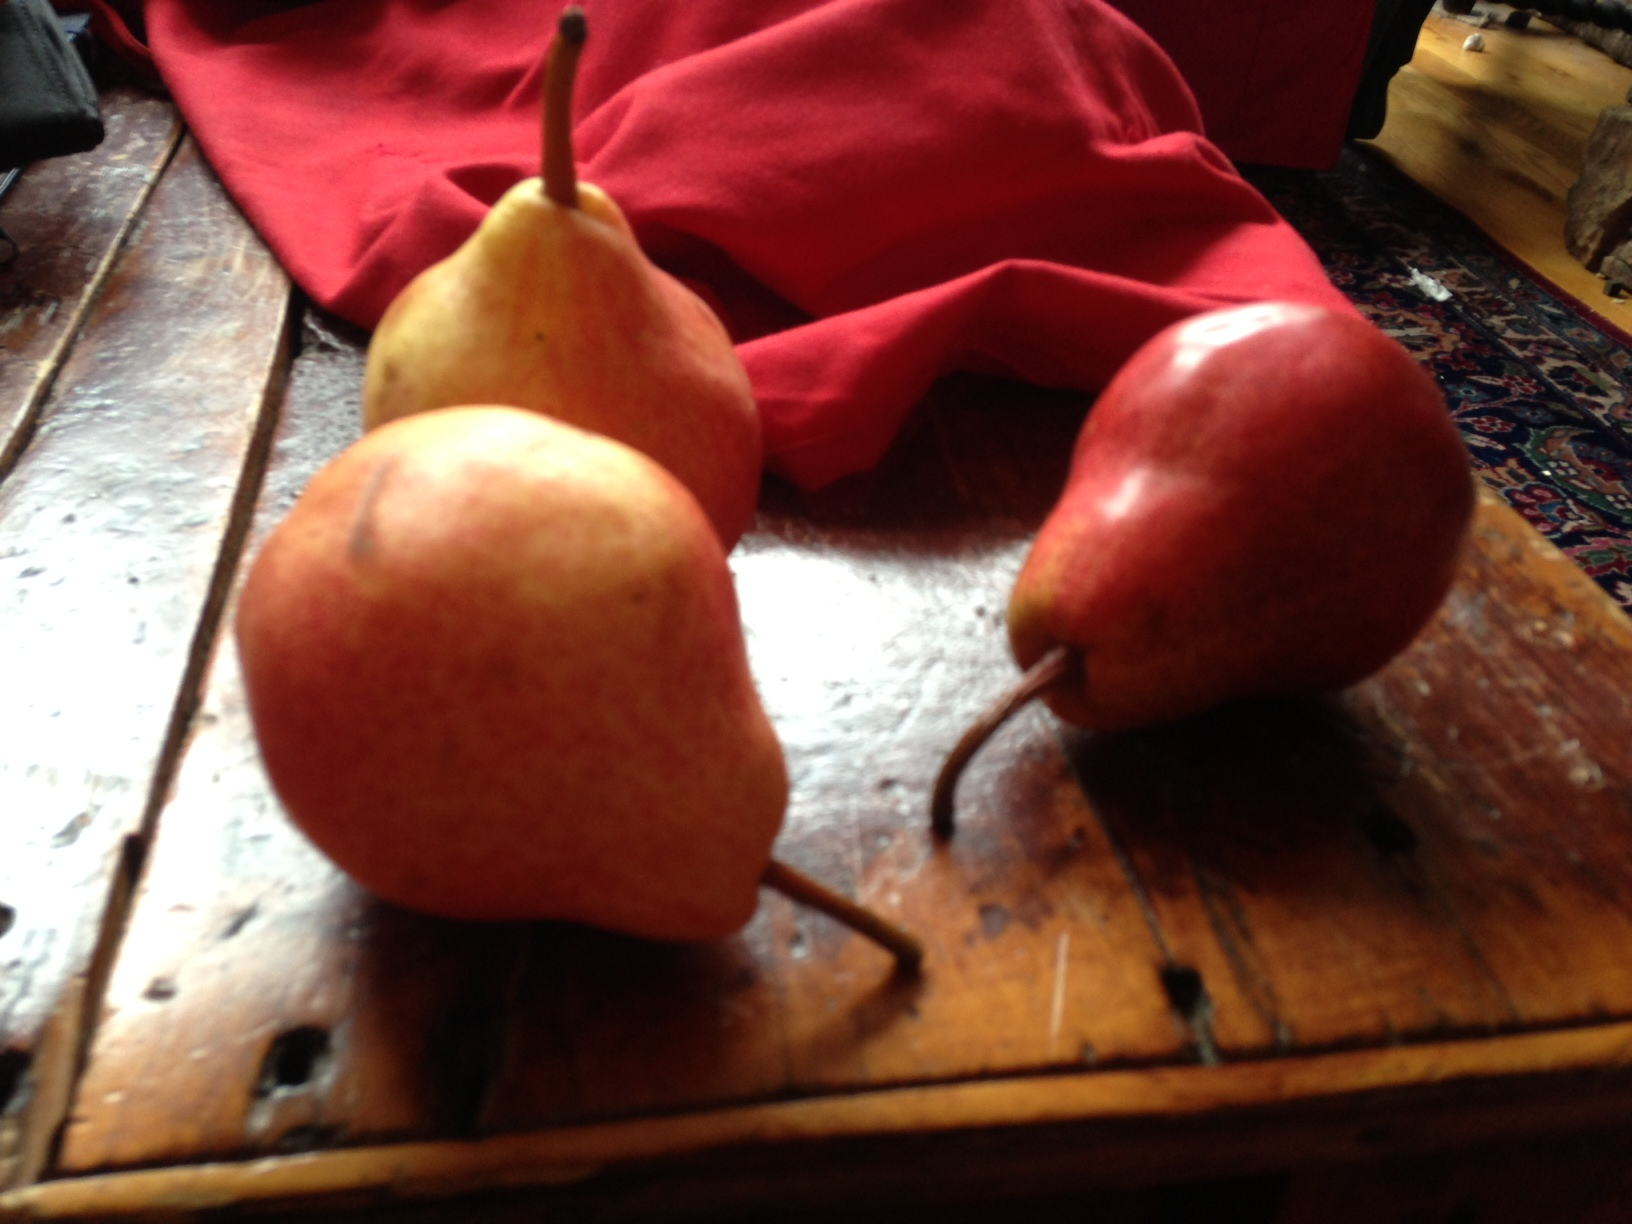 Janice Tanton, red pear, painting, chemotherapy